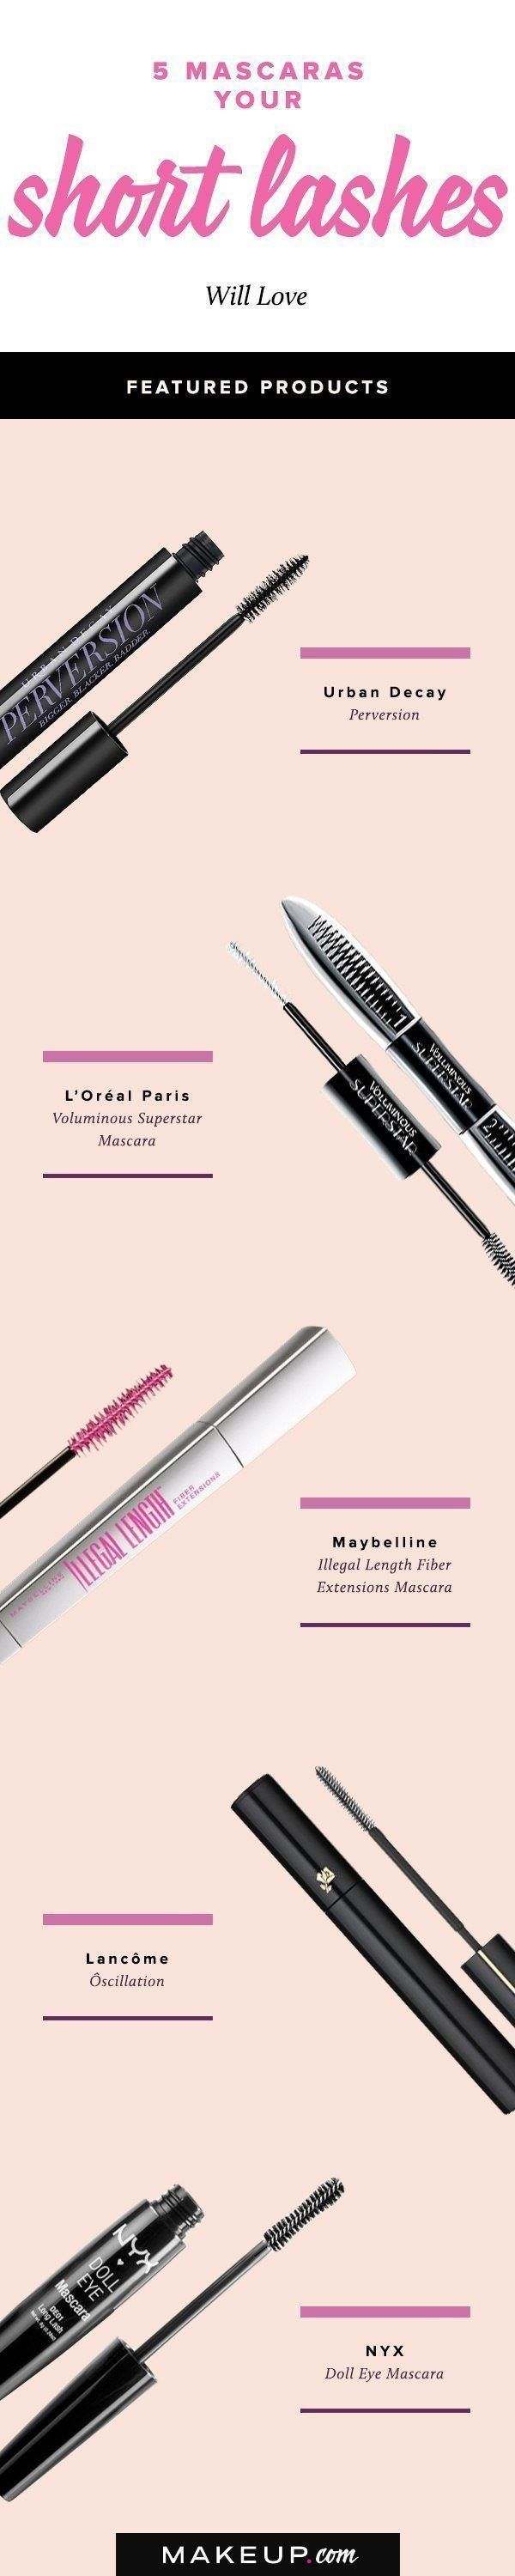 5 Mascaras Your Short Lashes Will Love